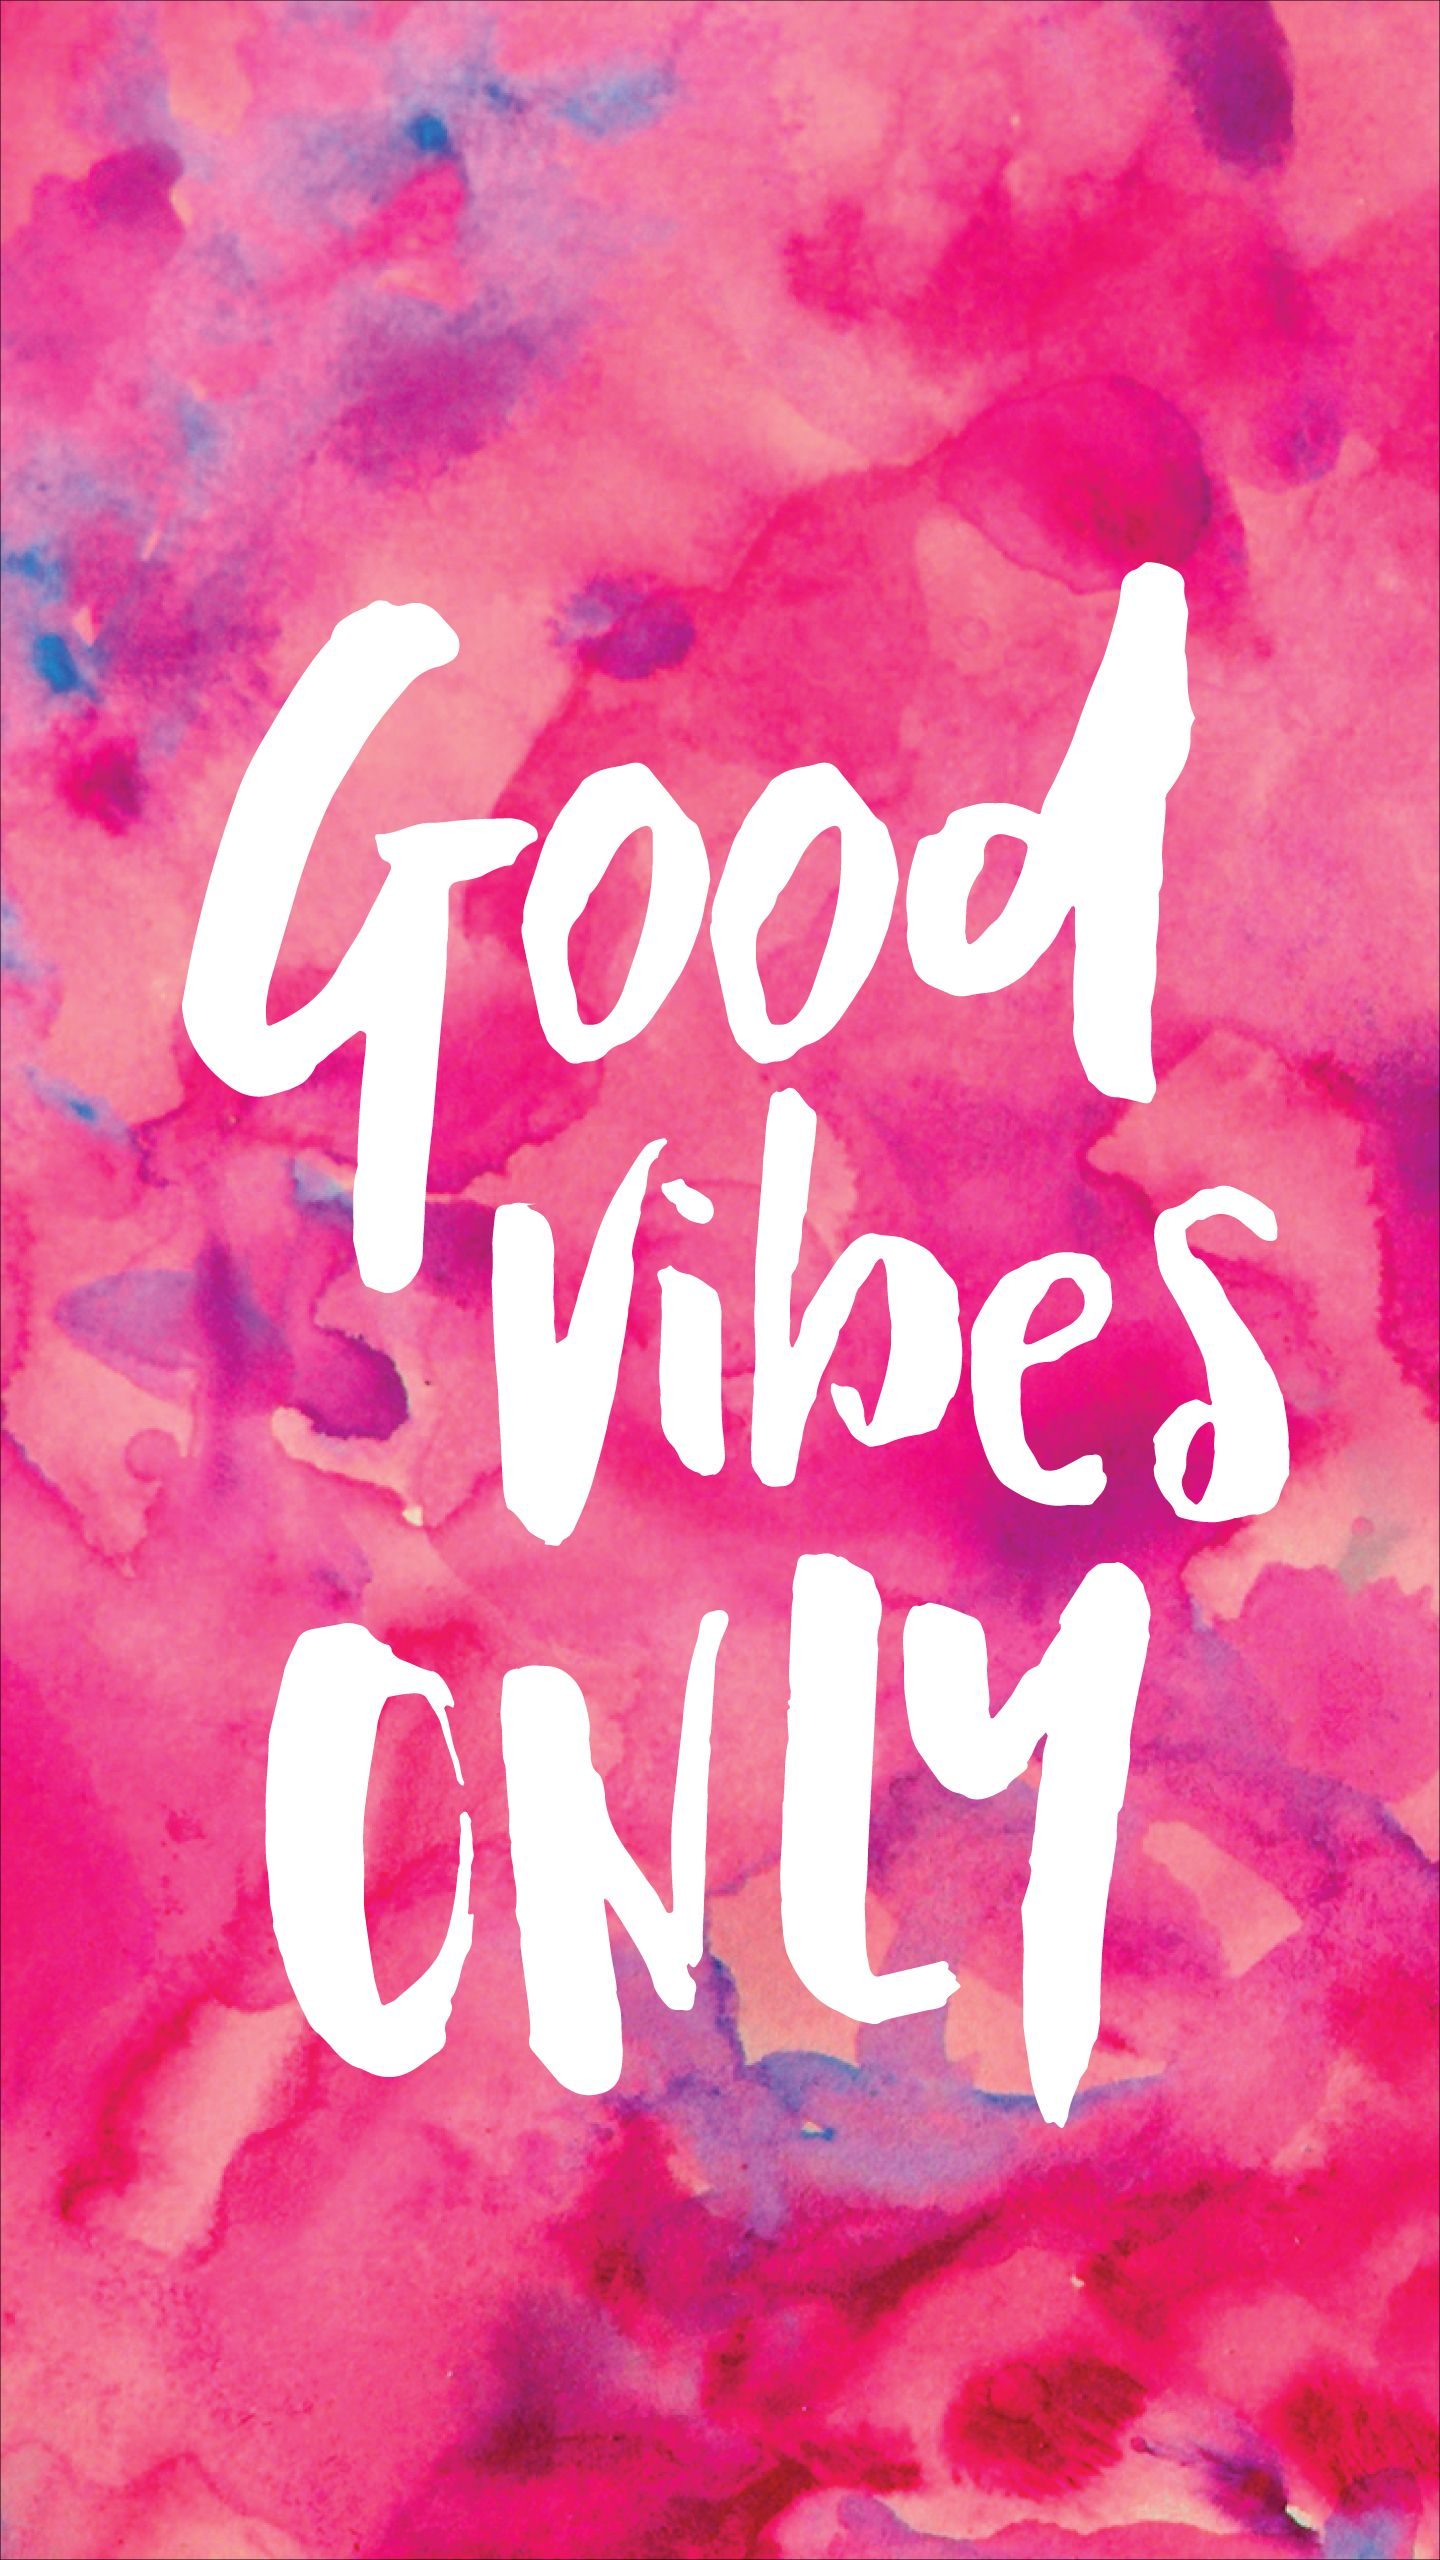 Good Vibes Only seems to be the most best inspiring